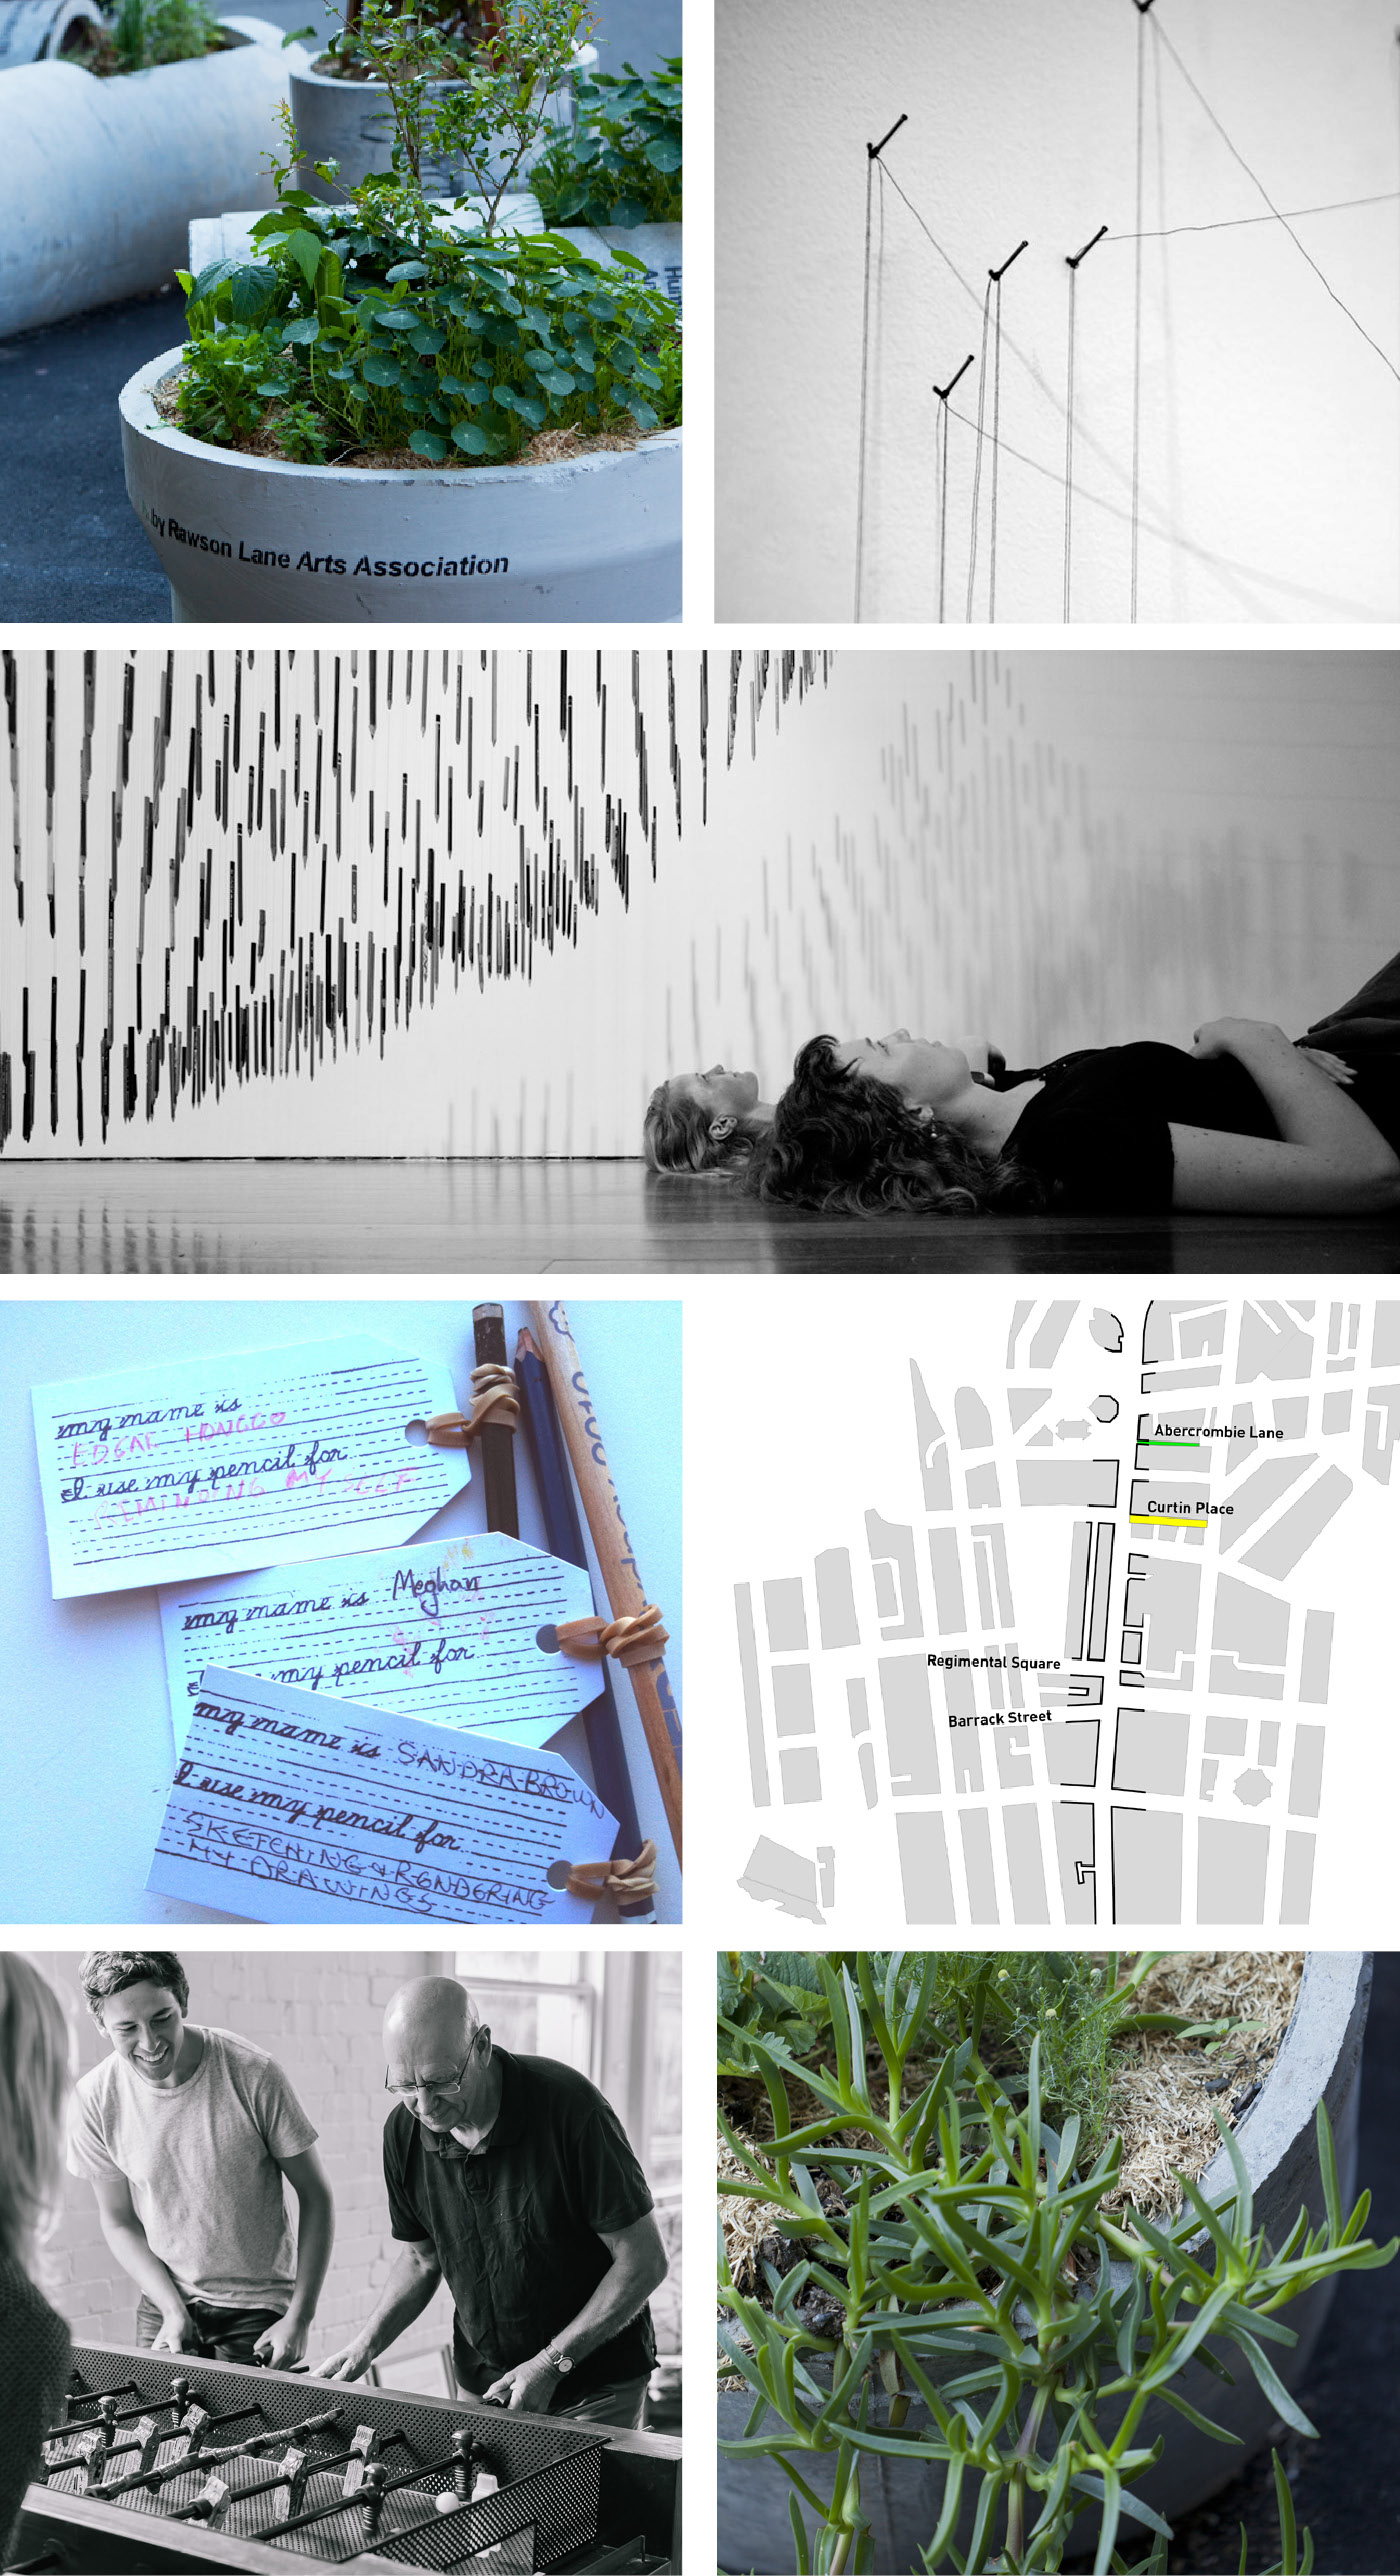 Architectural research projects